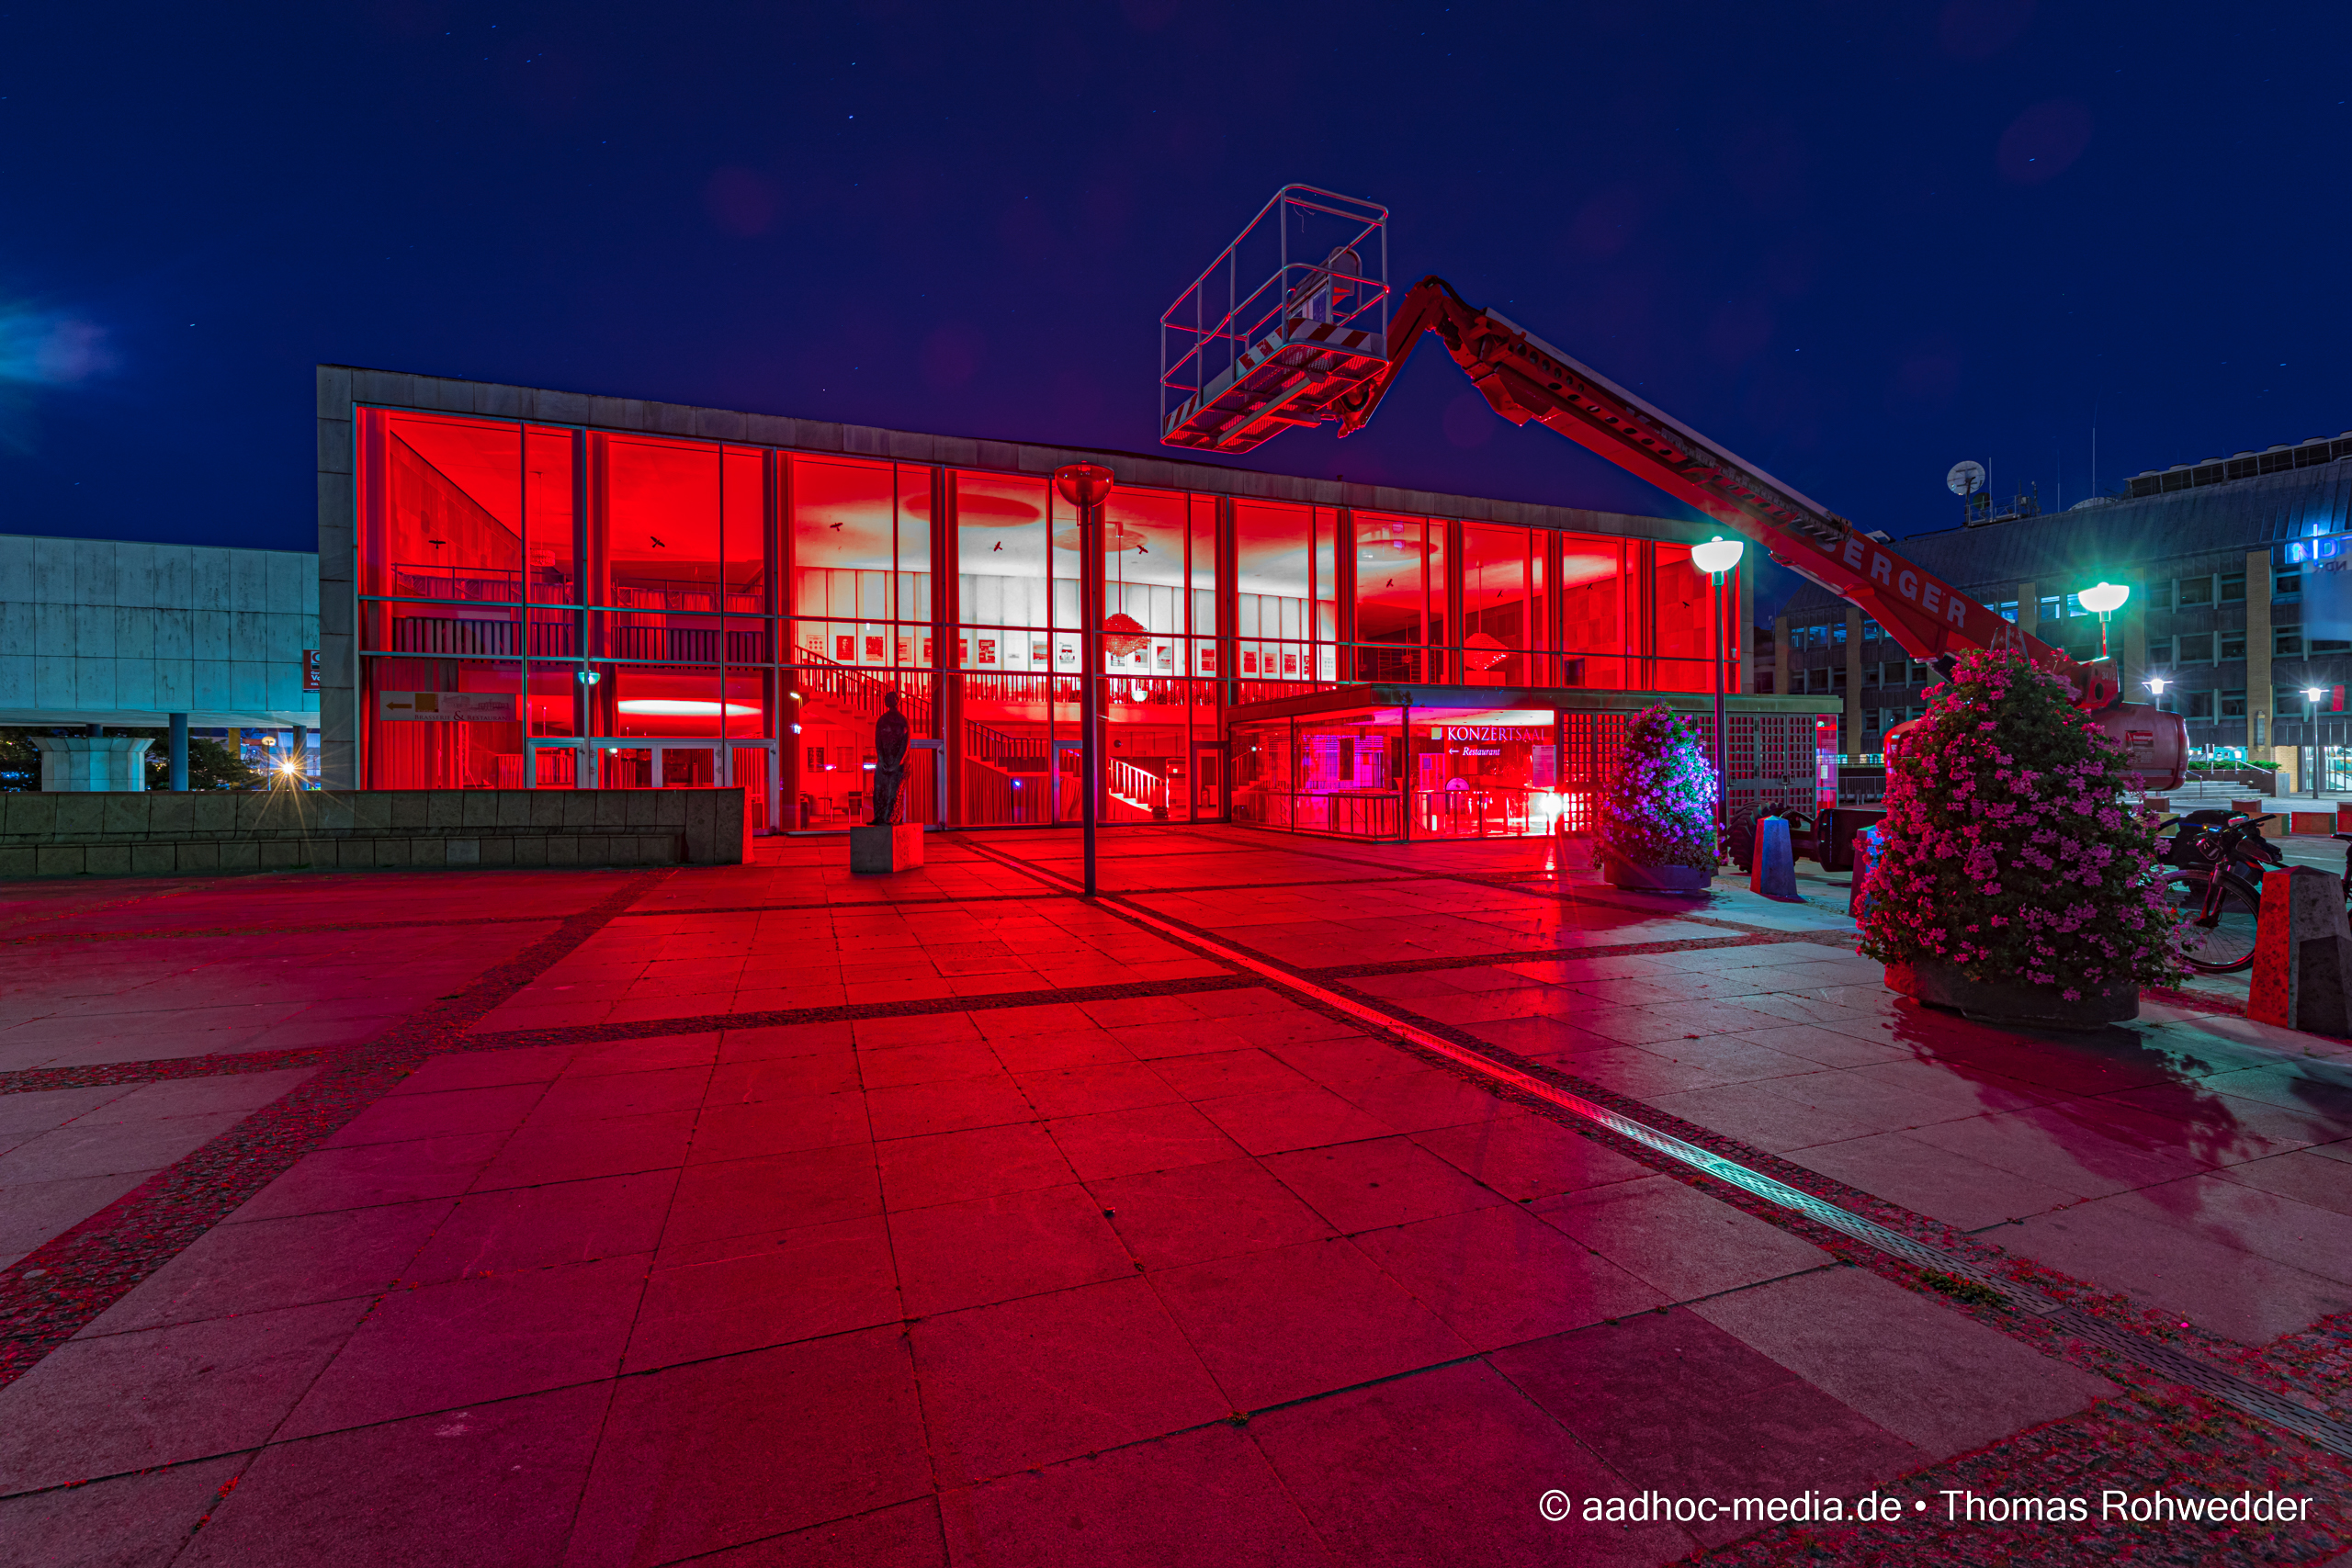 NightOfLights2020_5D4_116_1885www_Copyright2019_aadhoc-media-ThomasRohwedder